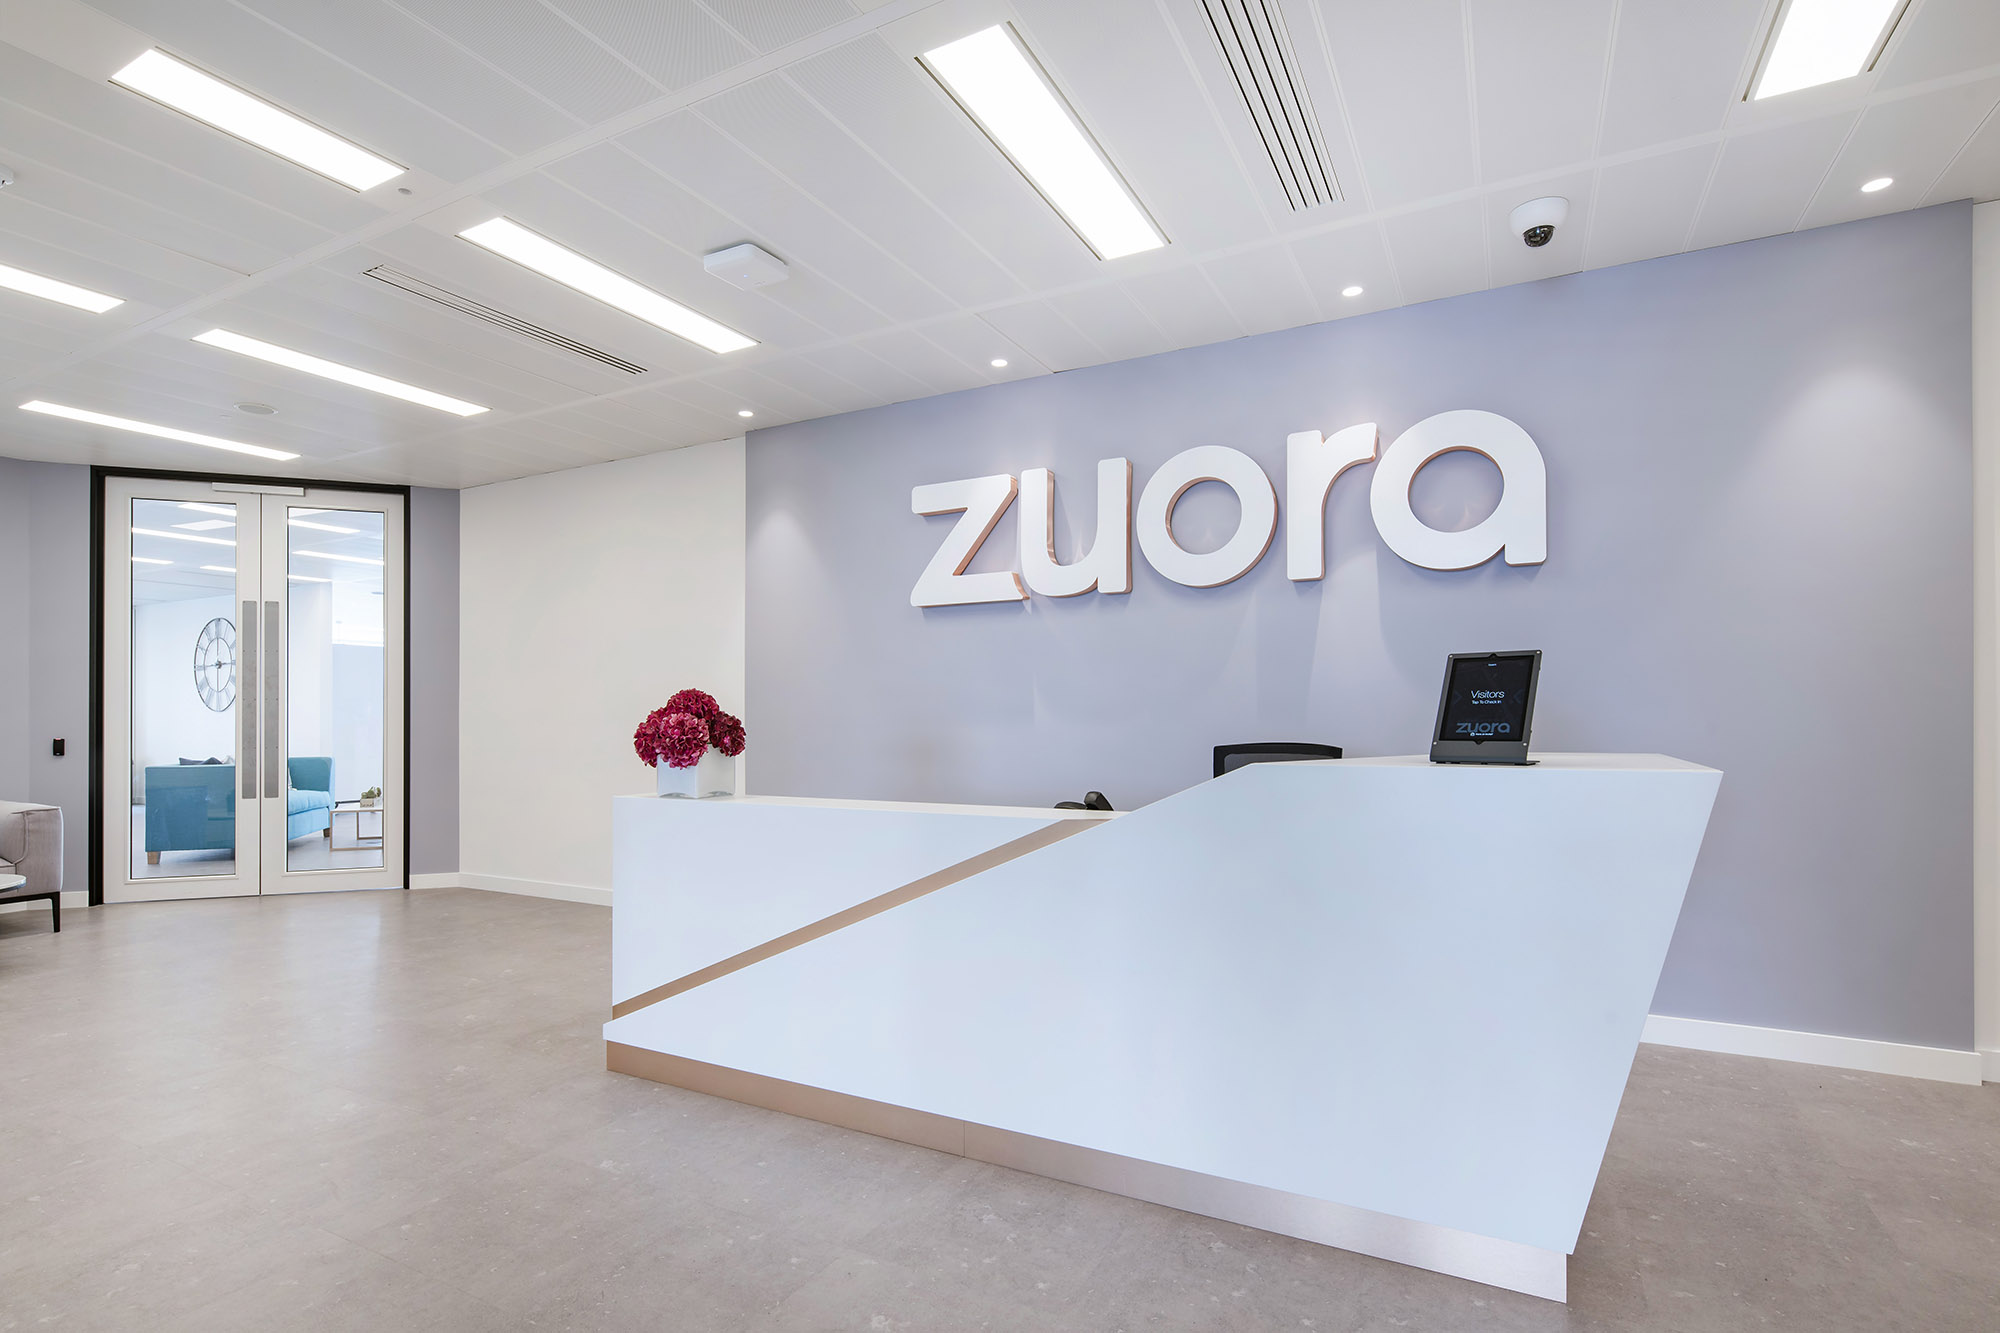 Zuora Reception